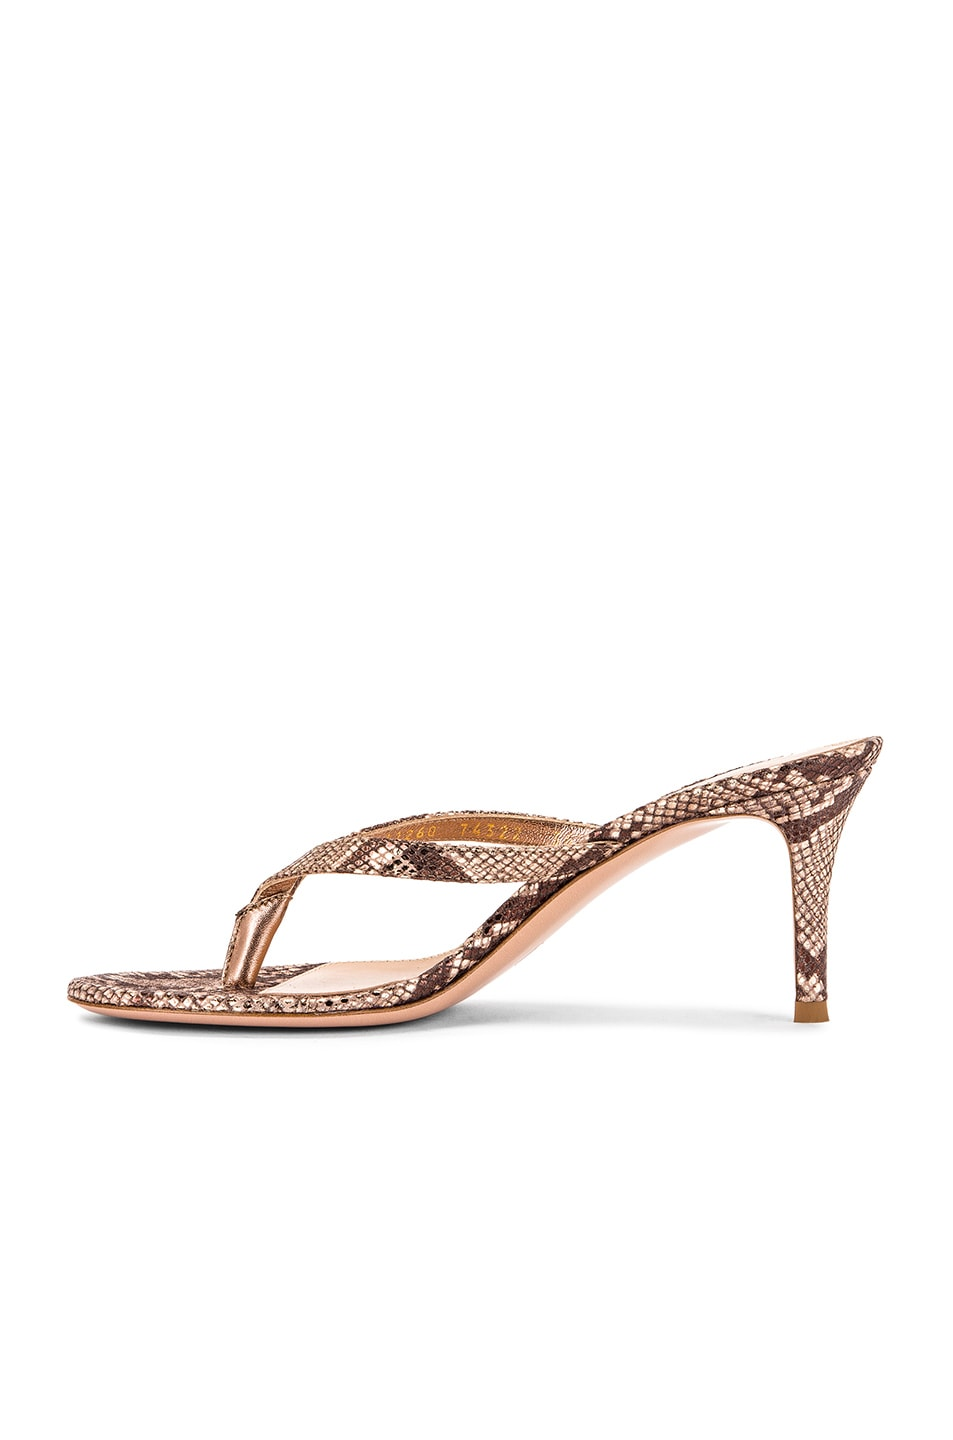 Image 5 of Gianvito Rossi Dallas Thong Sandals in Praline